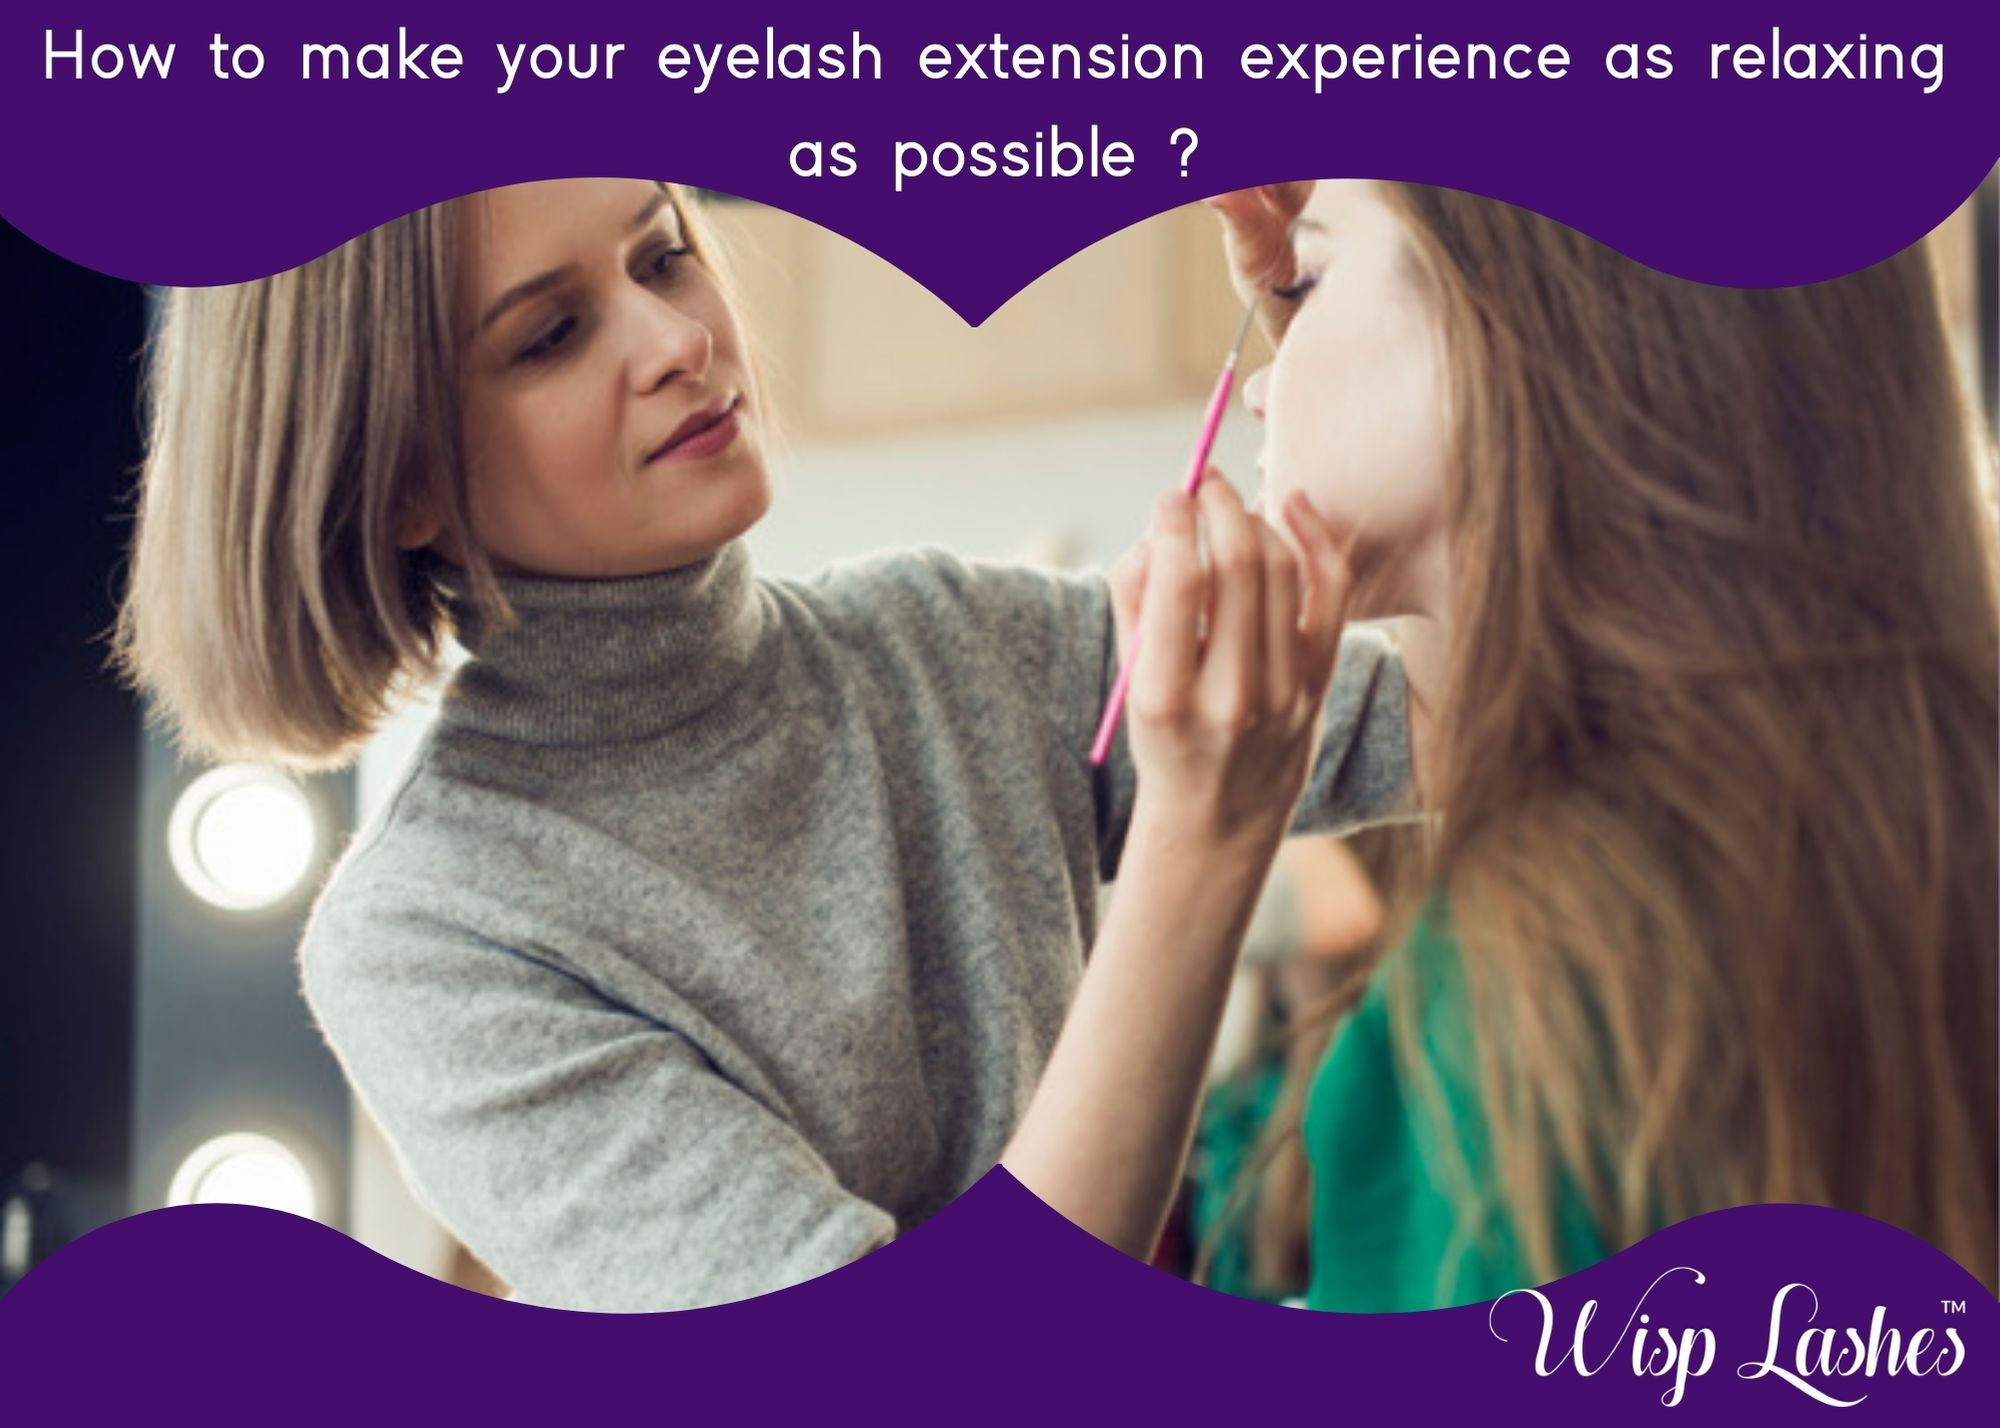 eyelash extension, How to make your eyelash extension experience as relaxing as possible